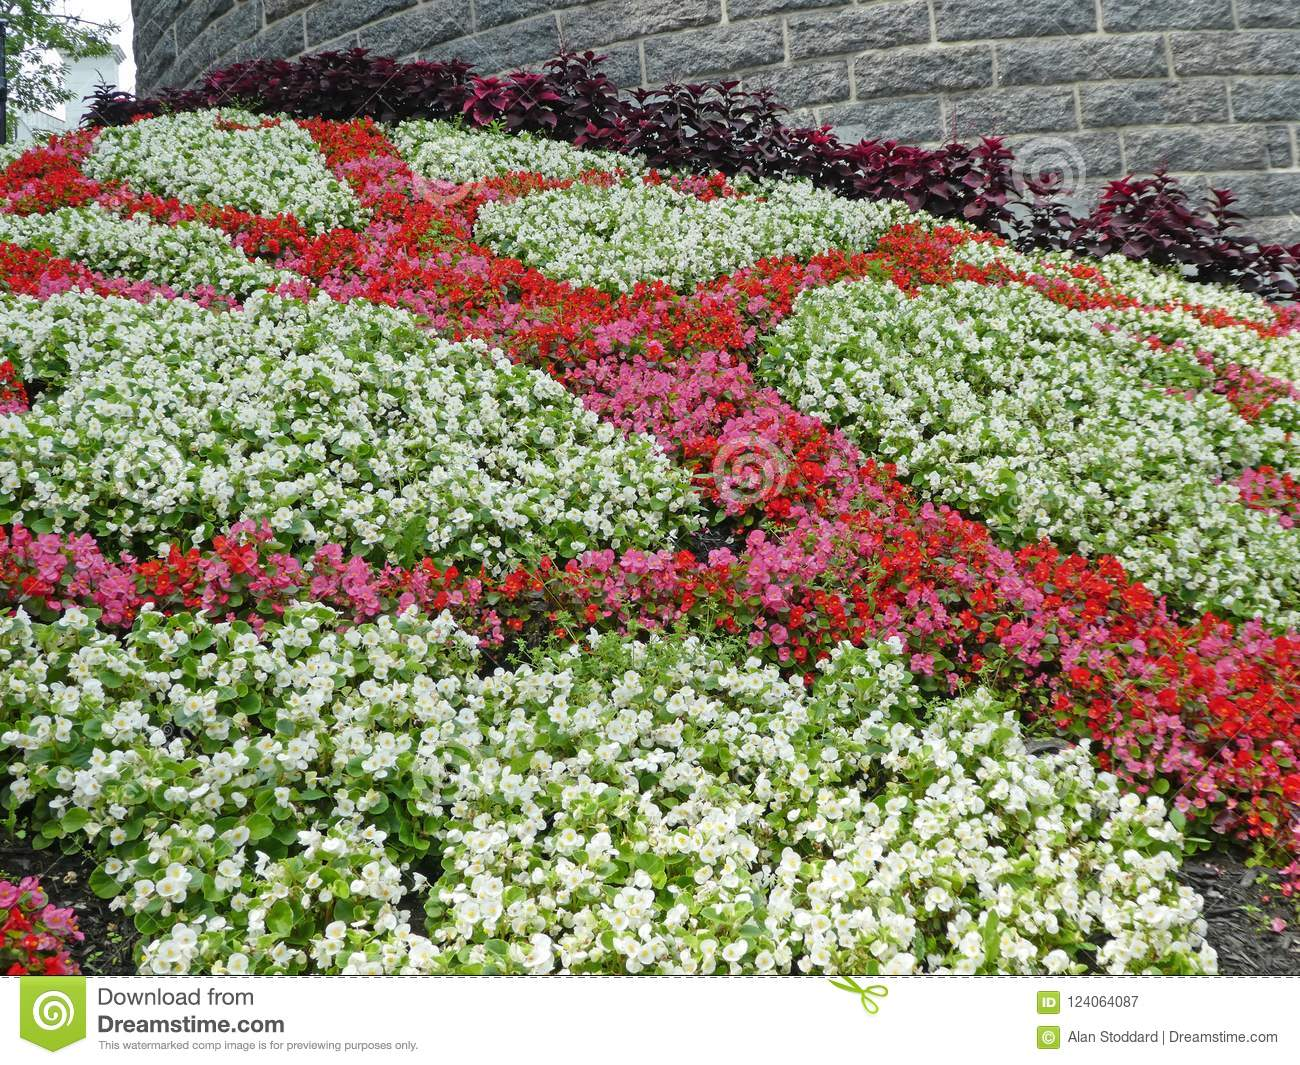 A Bed In The Joan Of Arc Garden In Quebec City Canada Is Pictured On August  8 2018.